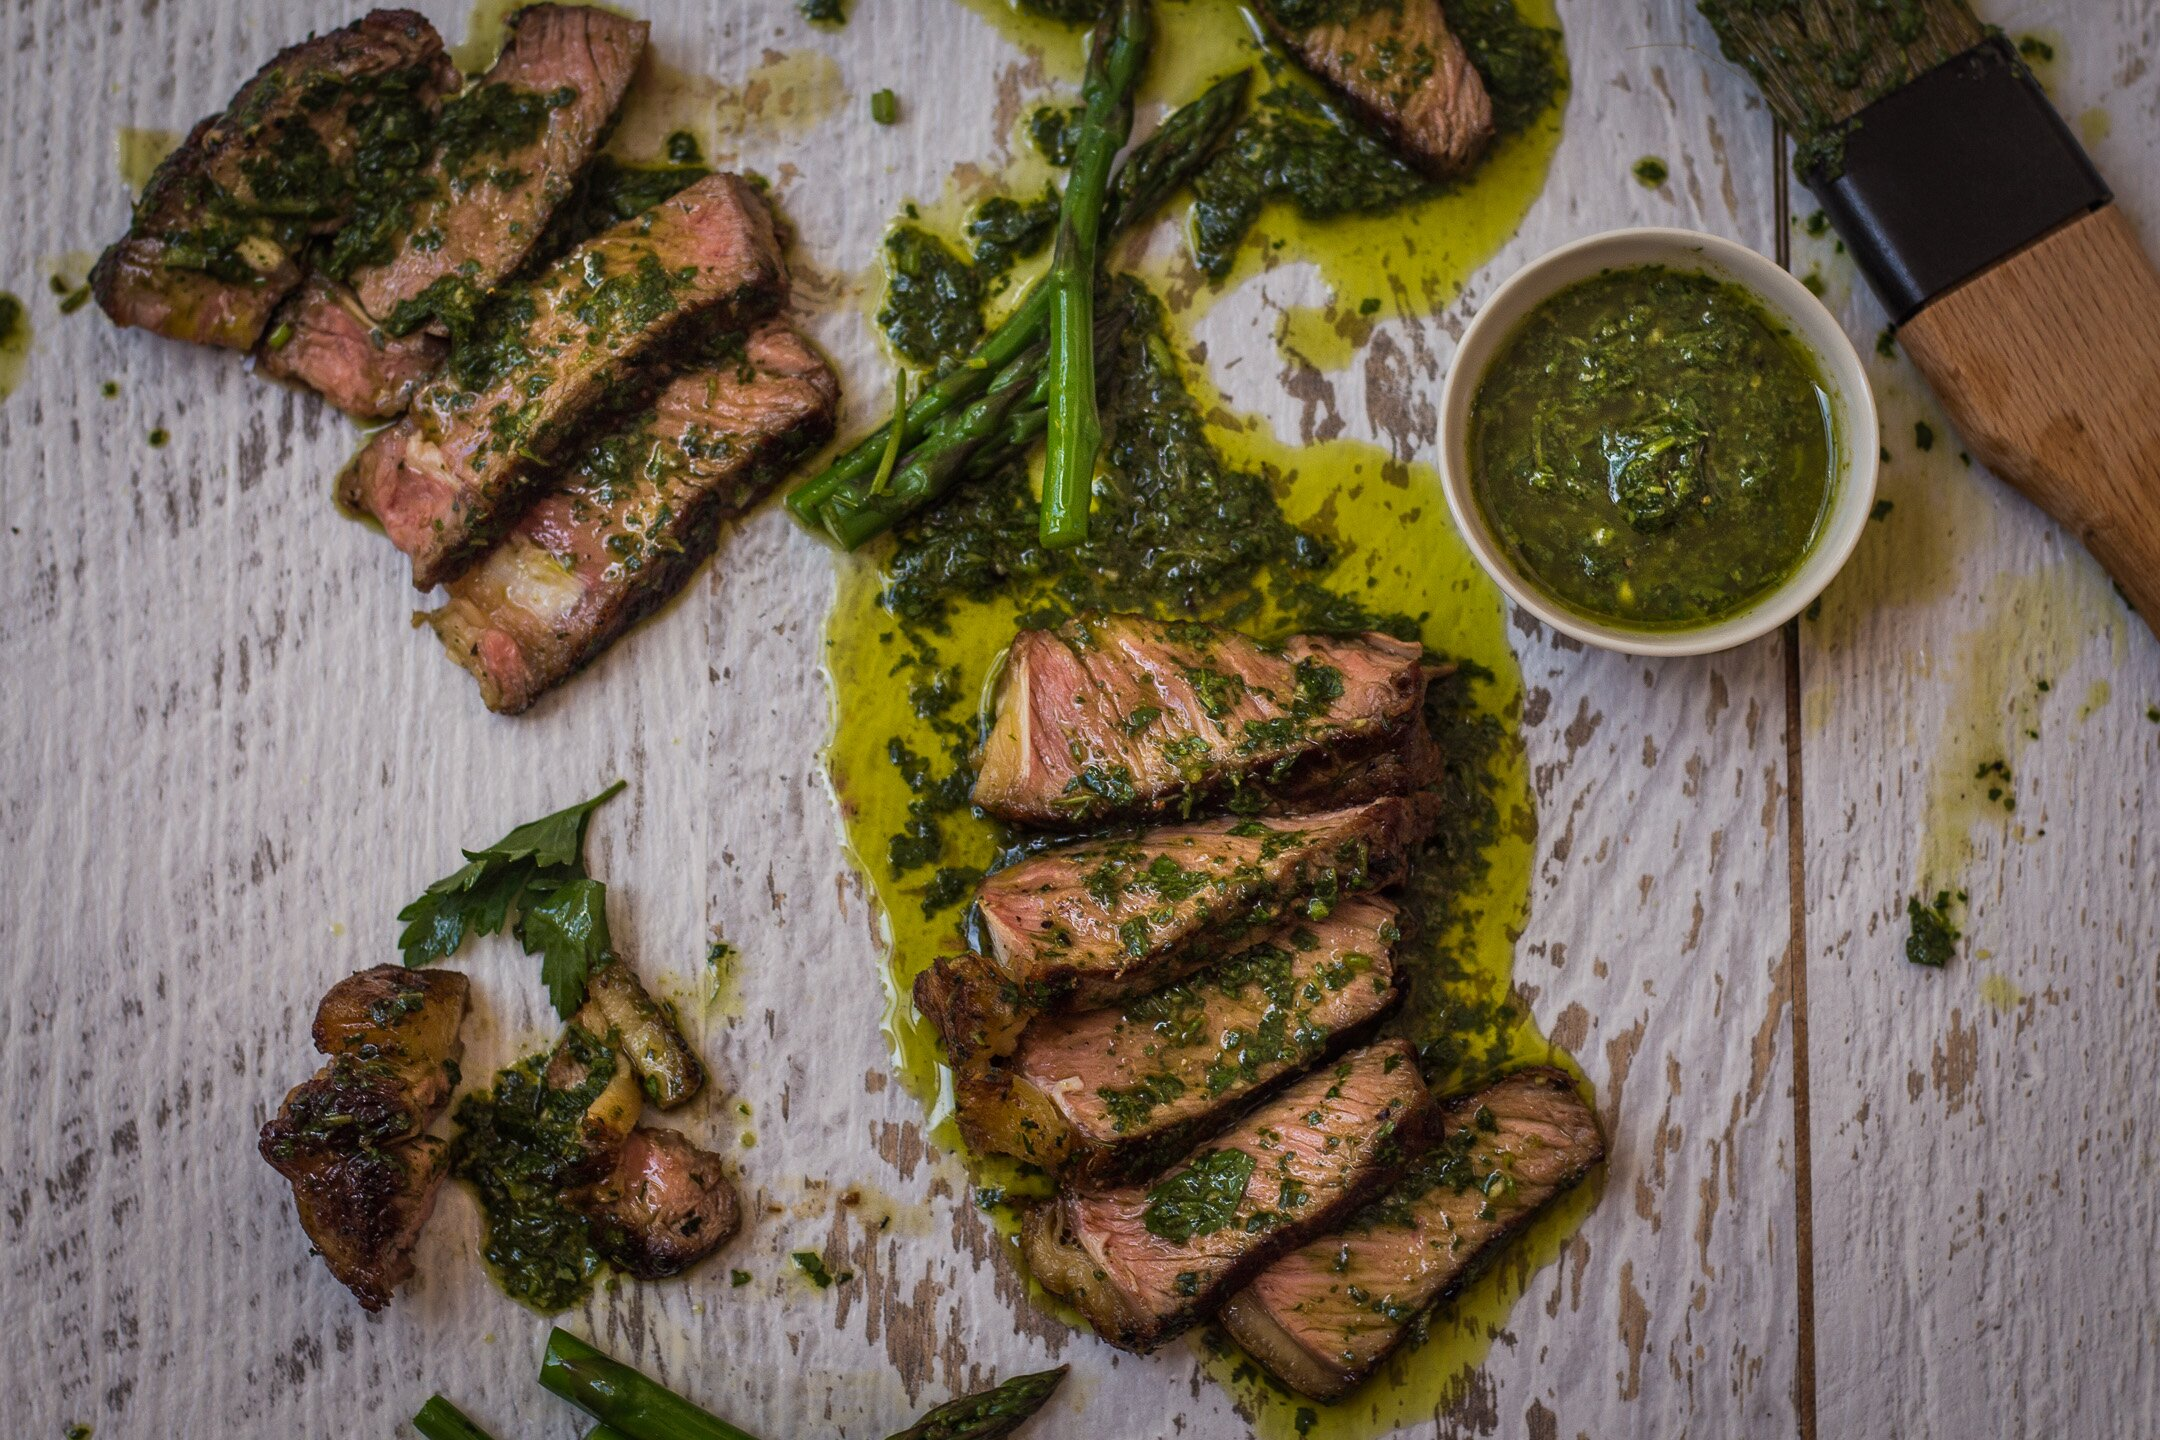 steak-with-chimichurri-sauce-recipe-4